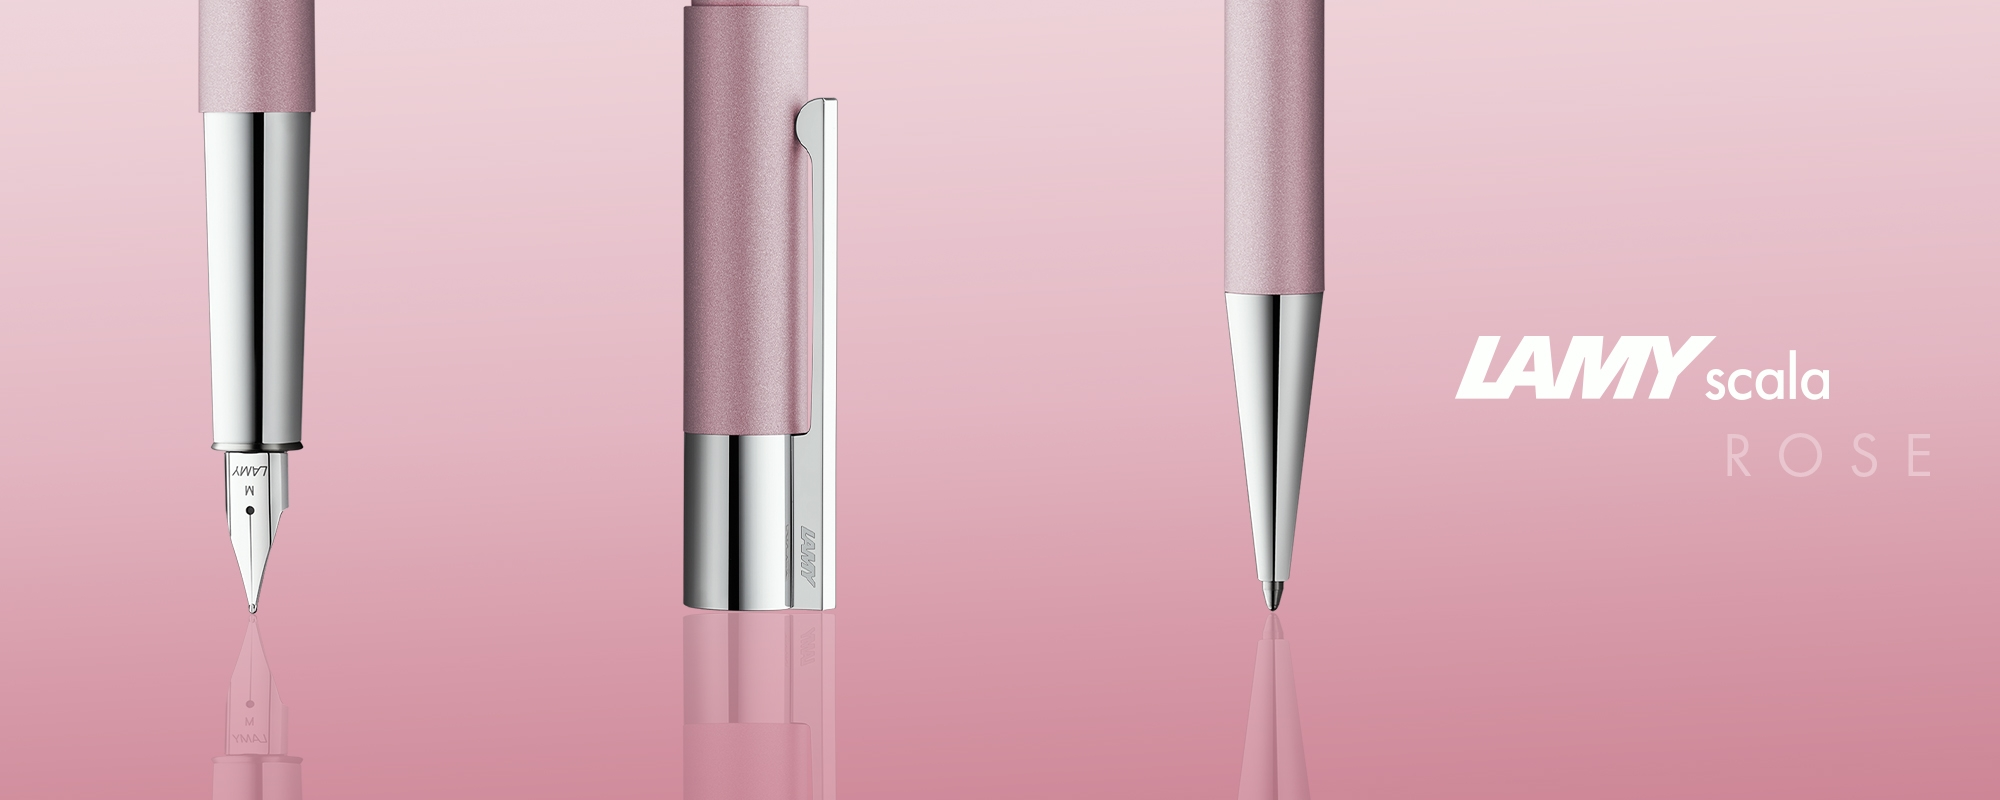 LAMY scala Rose